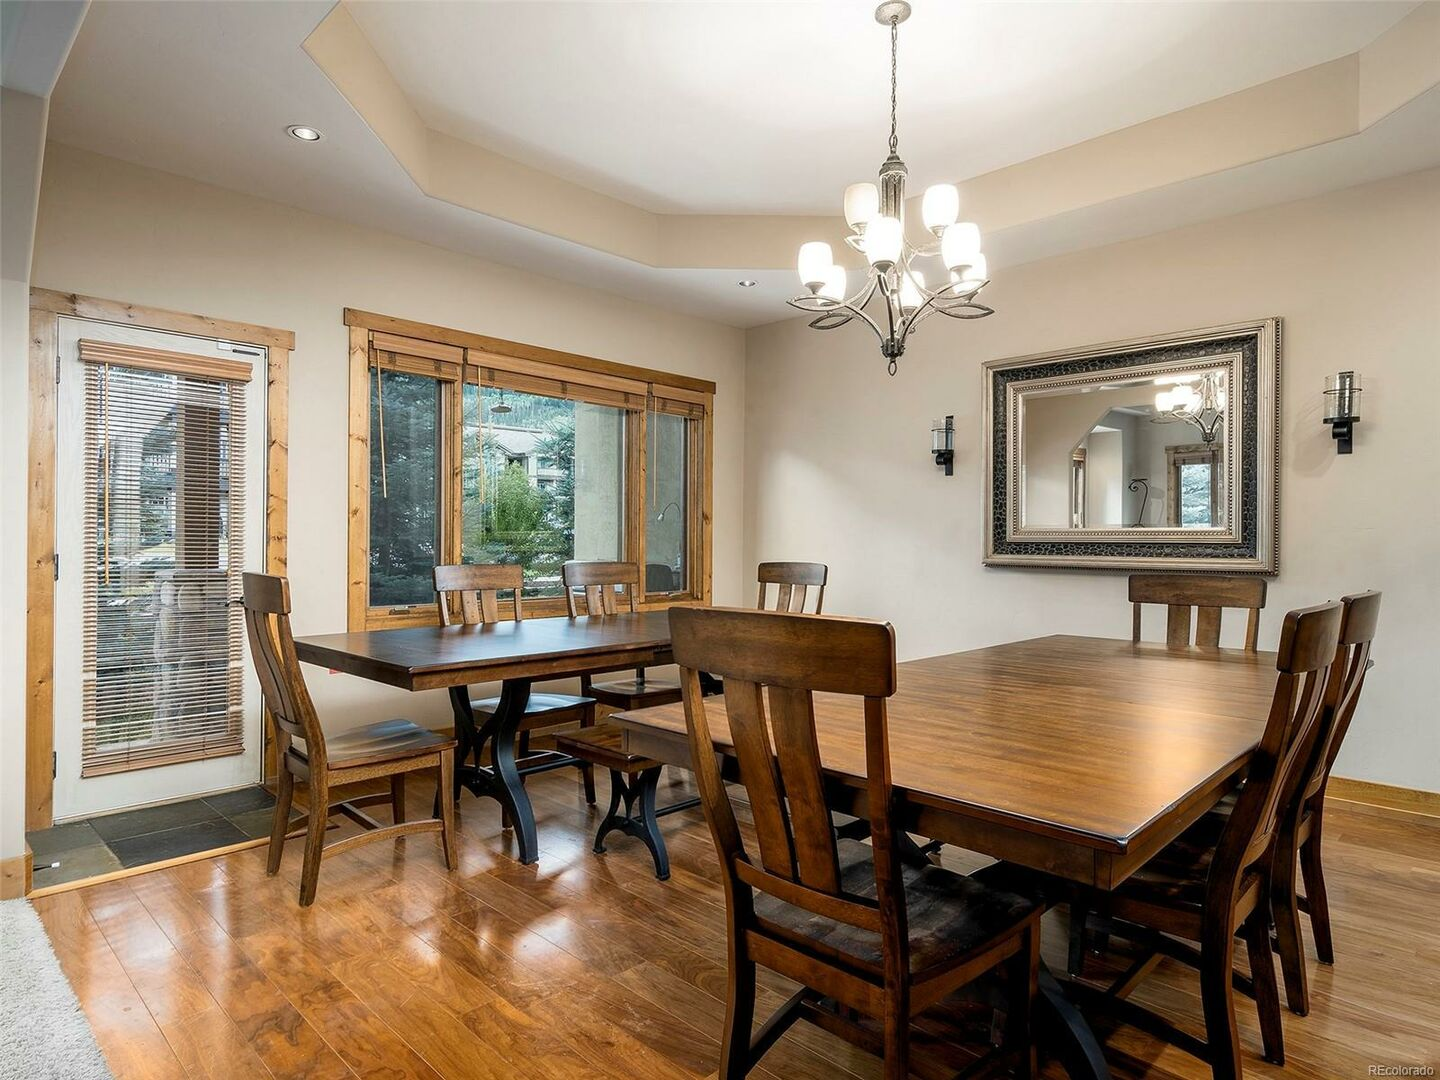 Window Door, Two Dining Tables, Chairs, Mirror, and Ceiling Lamp.